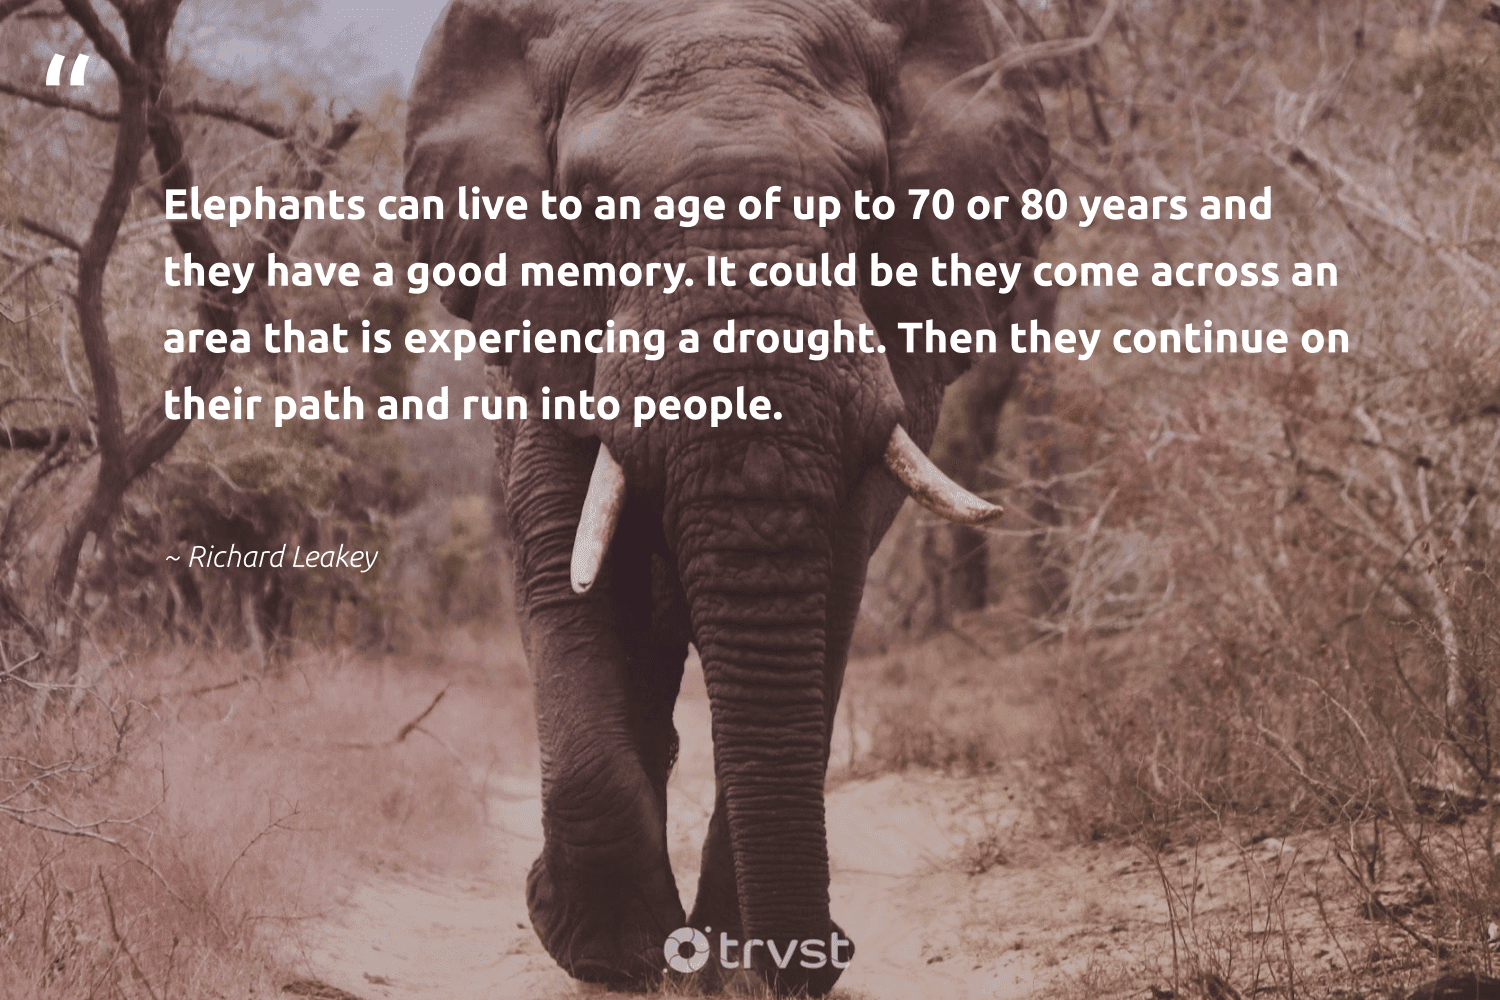 """""""Elephants can live to an age of up to 70 or 80 years and they have a good memory. It could be they come across an area that is experiencing a drought. Then they continue on their path and run into people.""""  - Richard Leakey #trvst #quotes #elephants #elephantlover #takeaction #endangeredspecies #planetearthfirst #wildgeography #ecoconscious #elephantlove #gogreen #savetheelephants"""